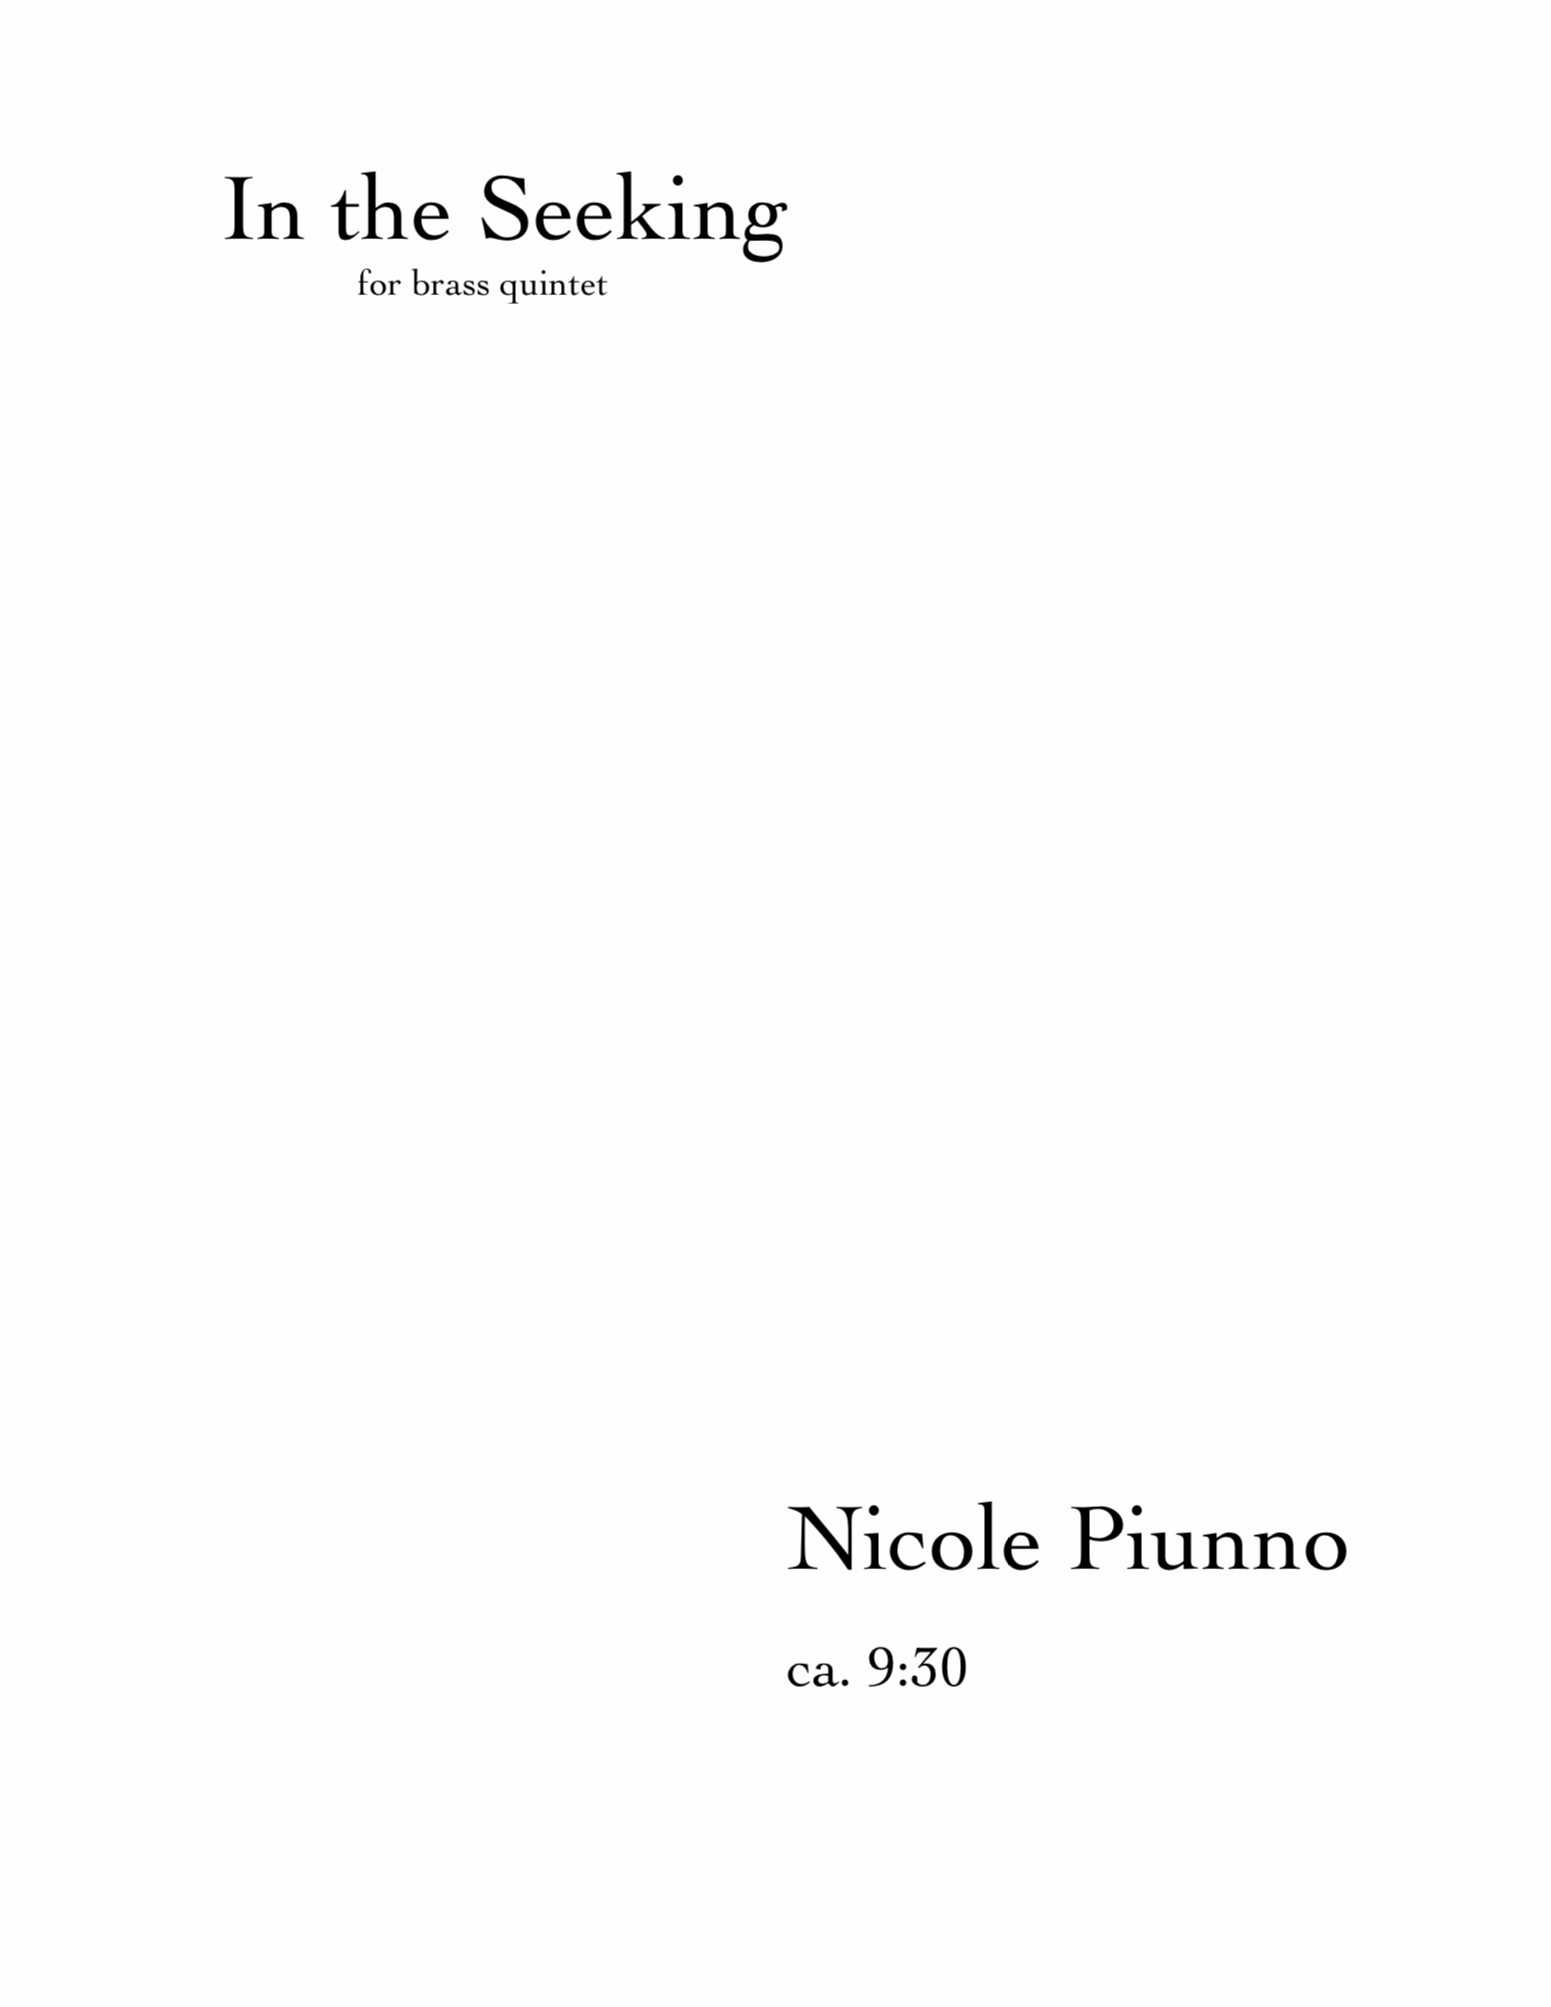 In The Seeking by Nicole Piunno